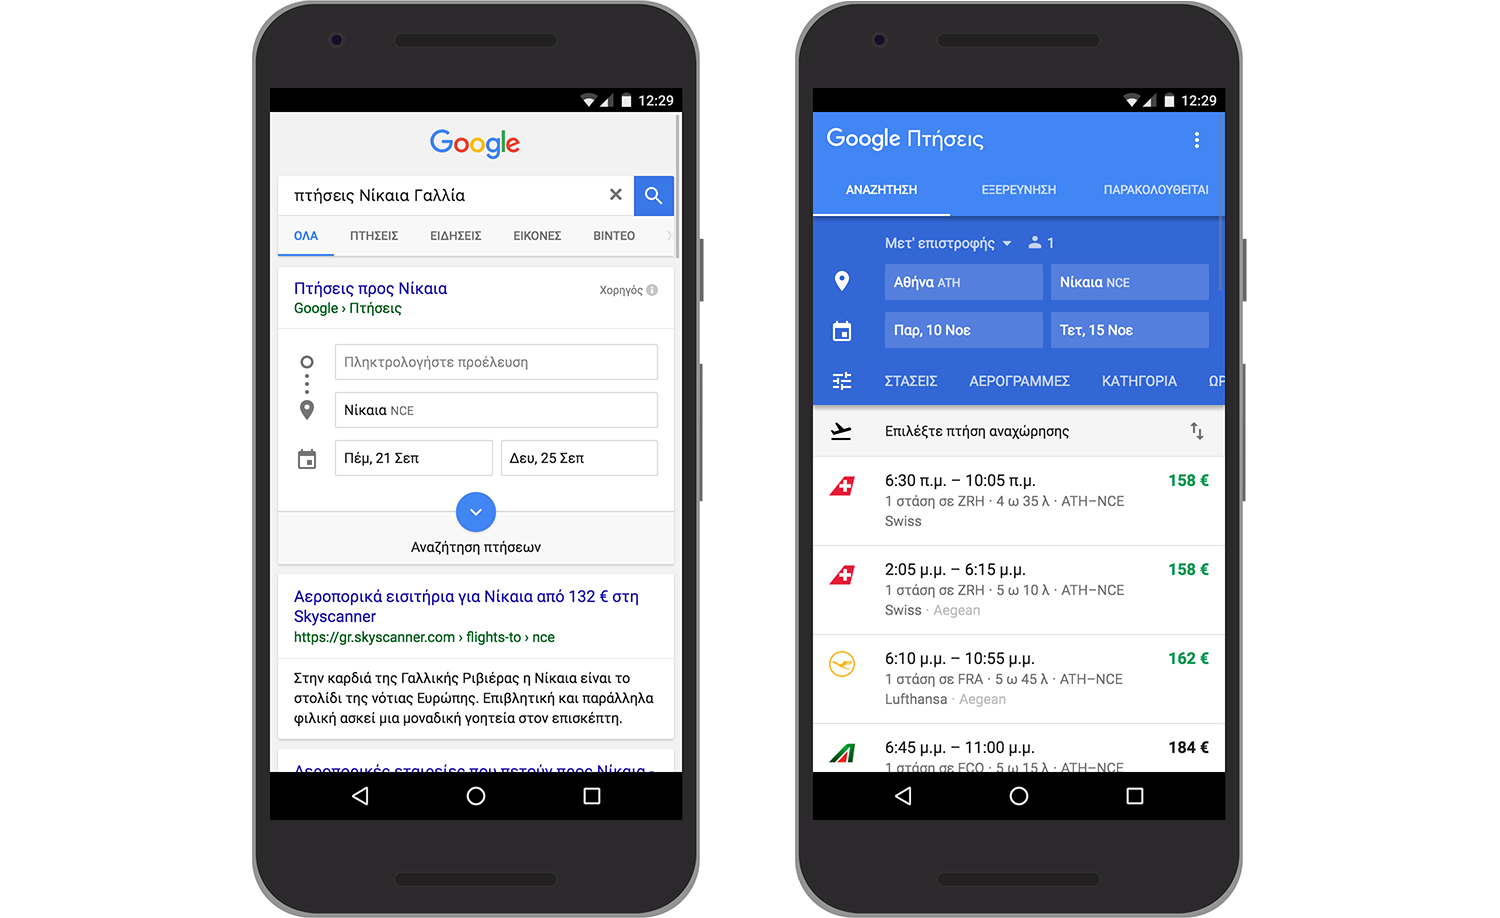 Google Flights in Greece